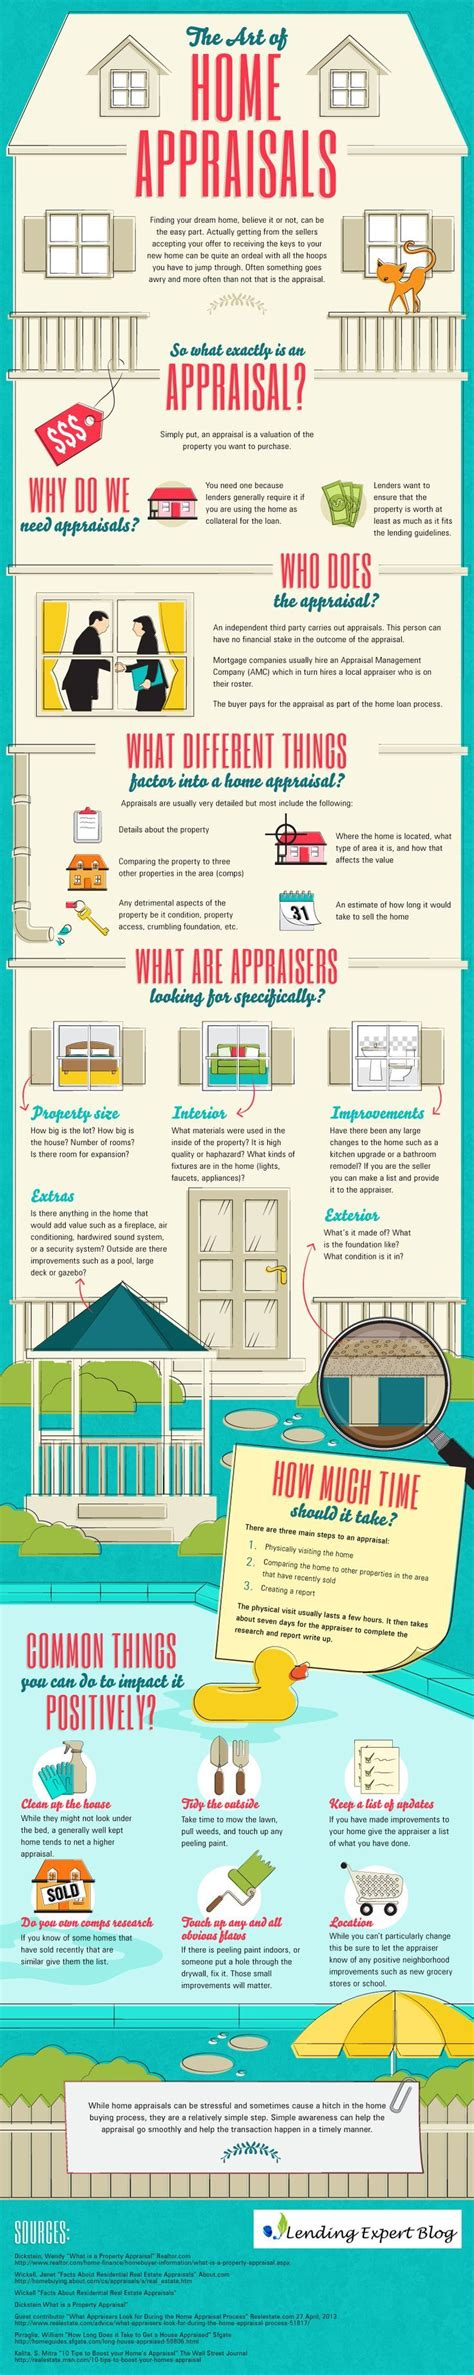 5 tips for home loan for under construction projects infographic the art and science of home appraisals